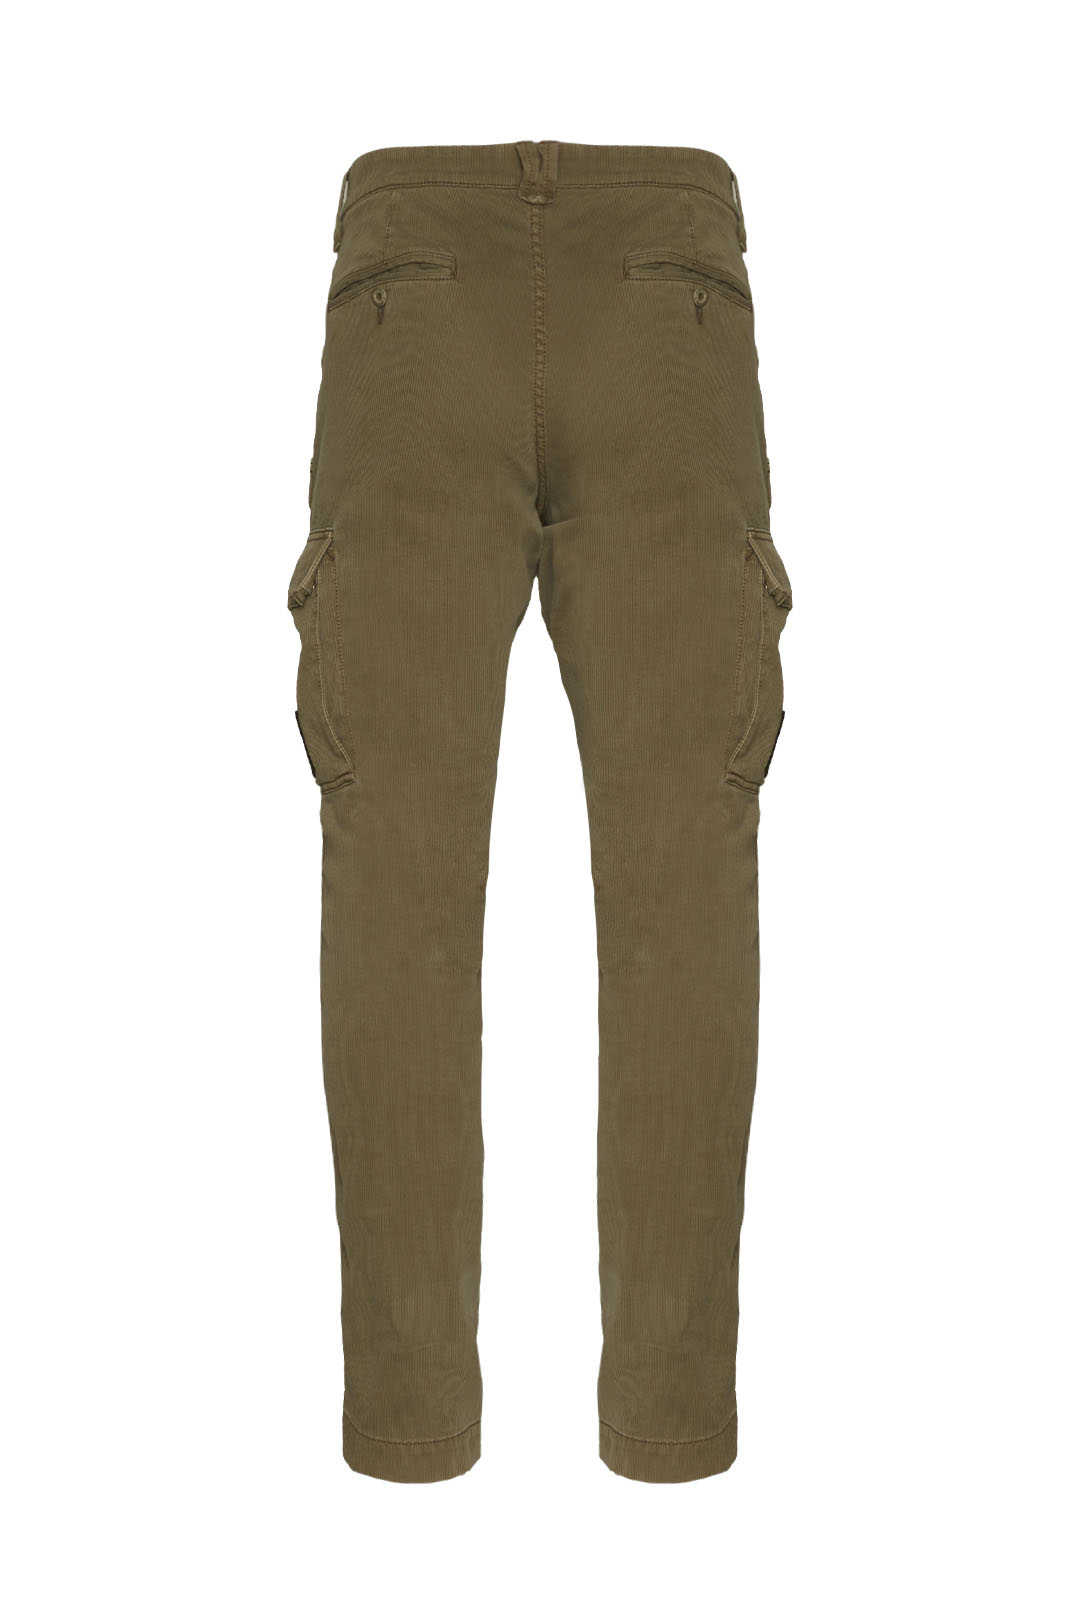 Multi-pockets striped fabric trousers    2